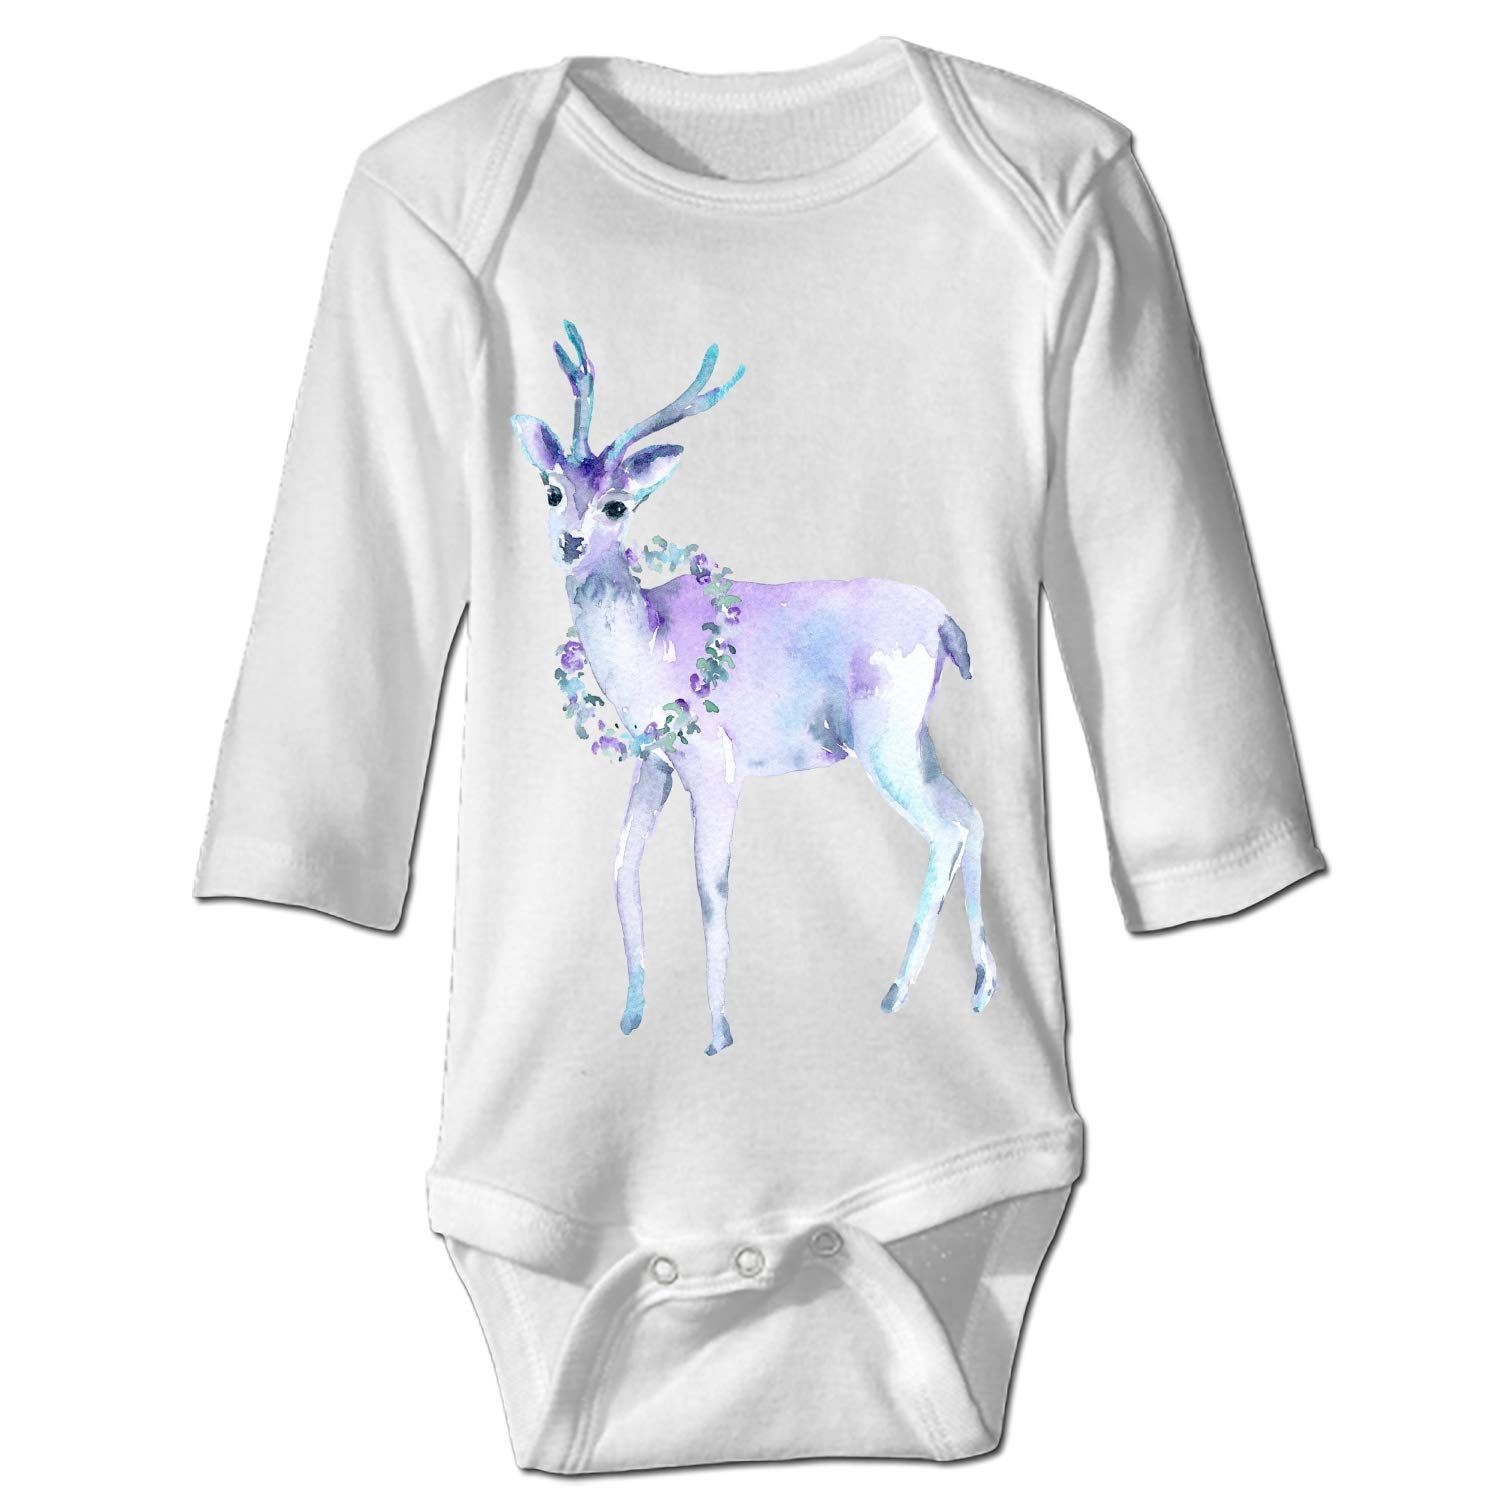 Imiss Floral Deer Baby Girl Clothes Long Sleeve Onesies Romper Home Outfit